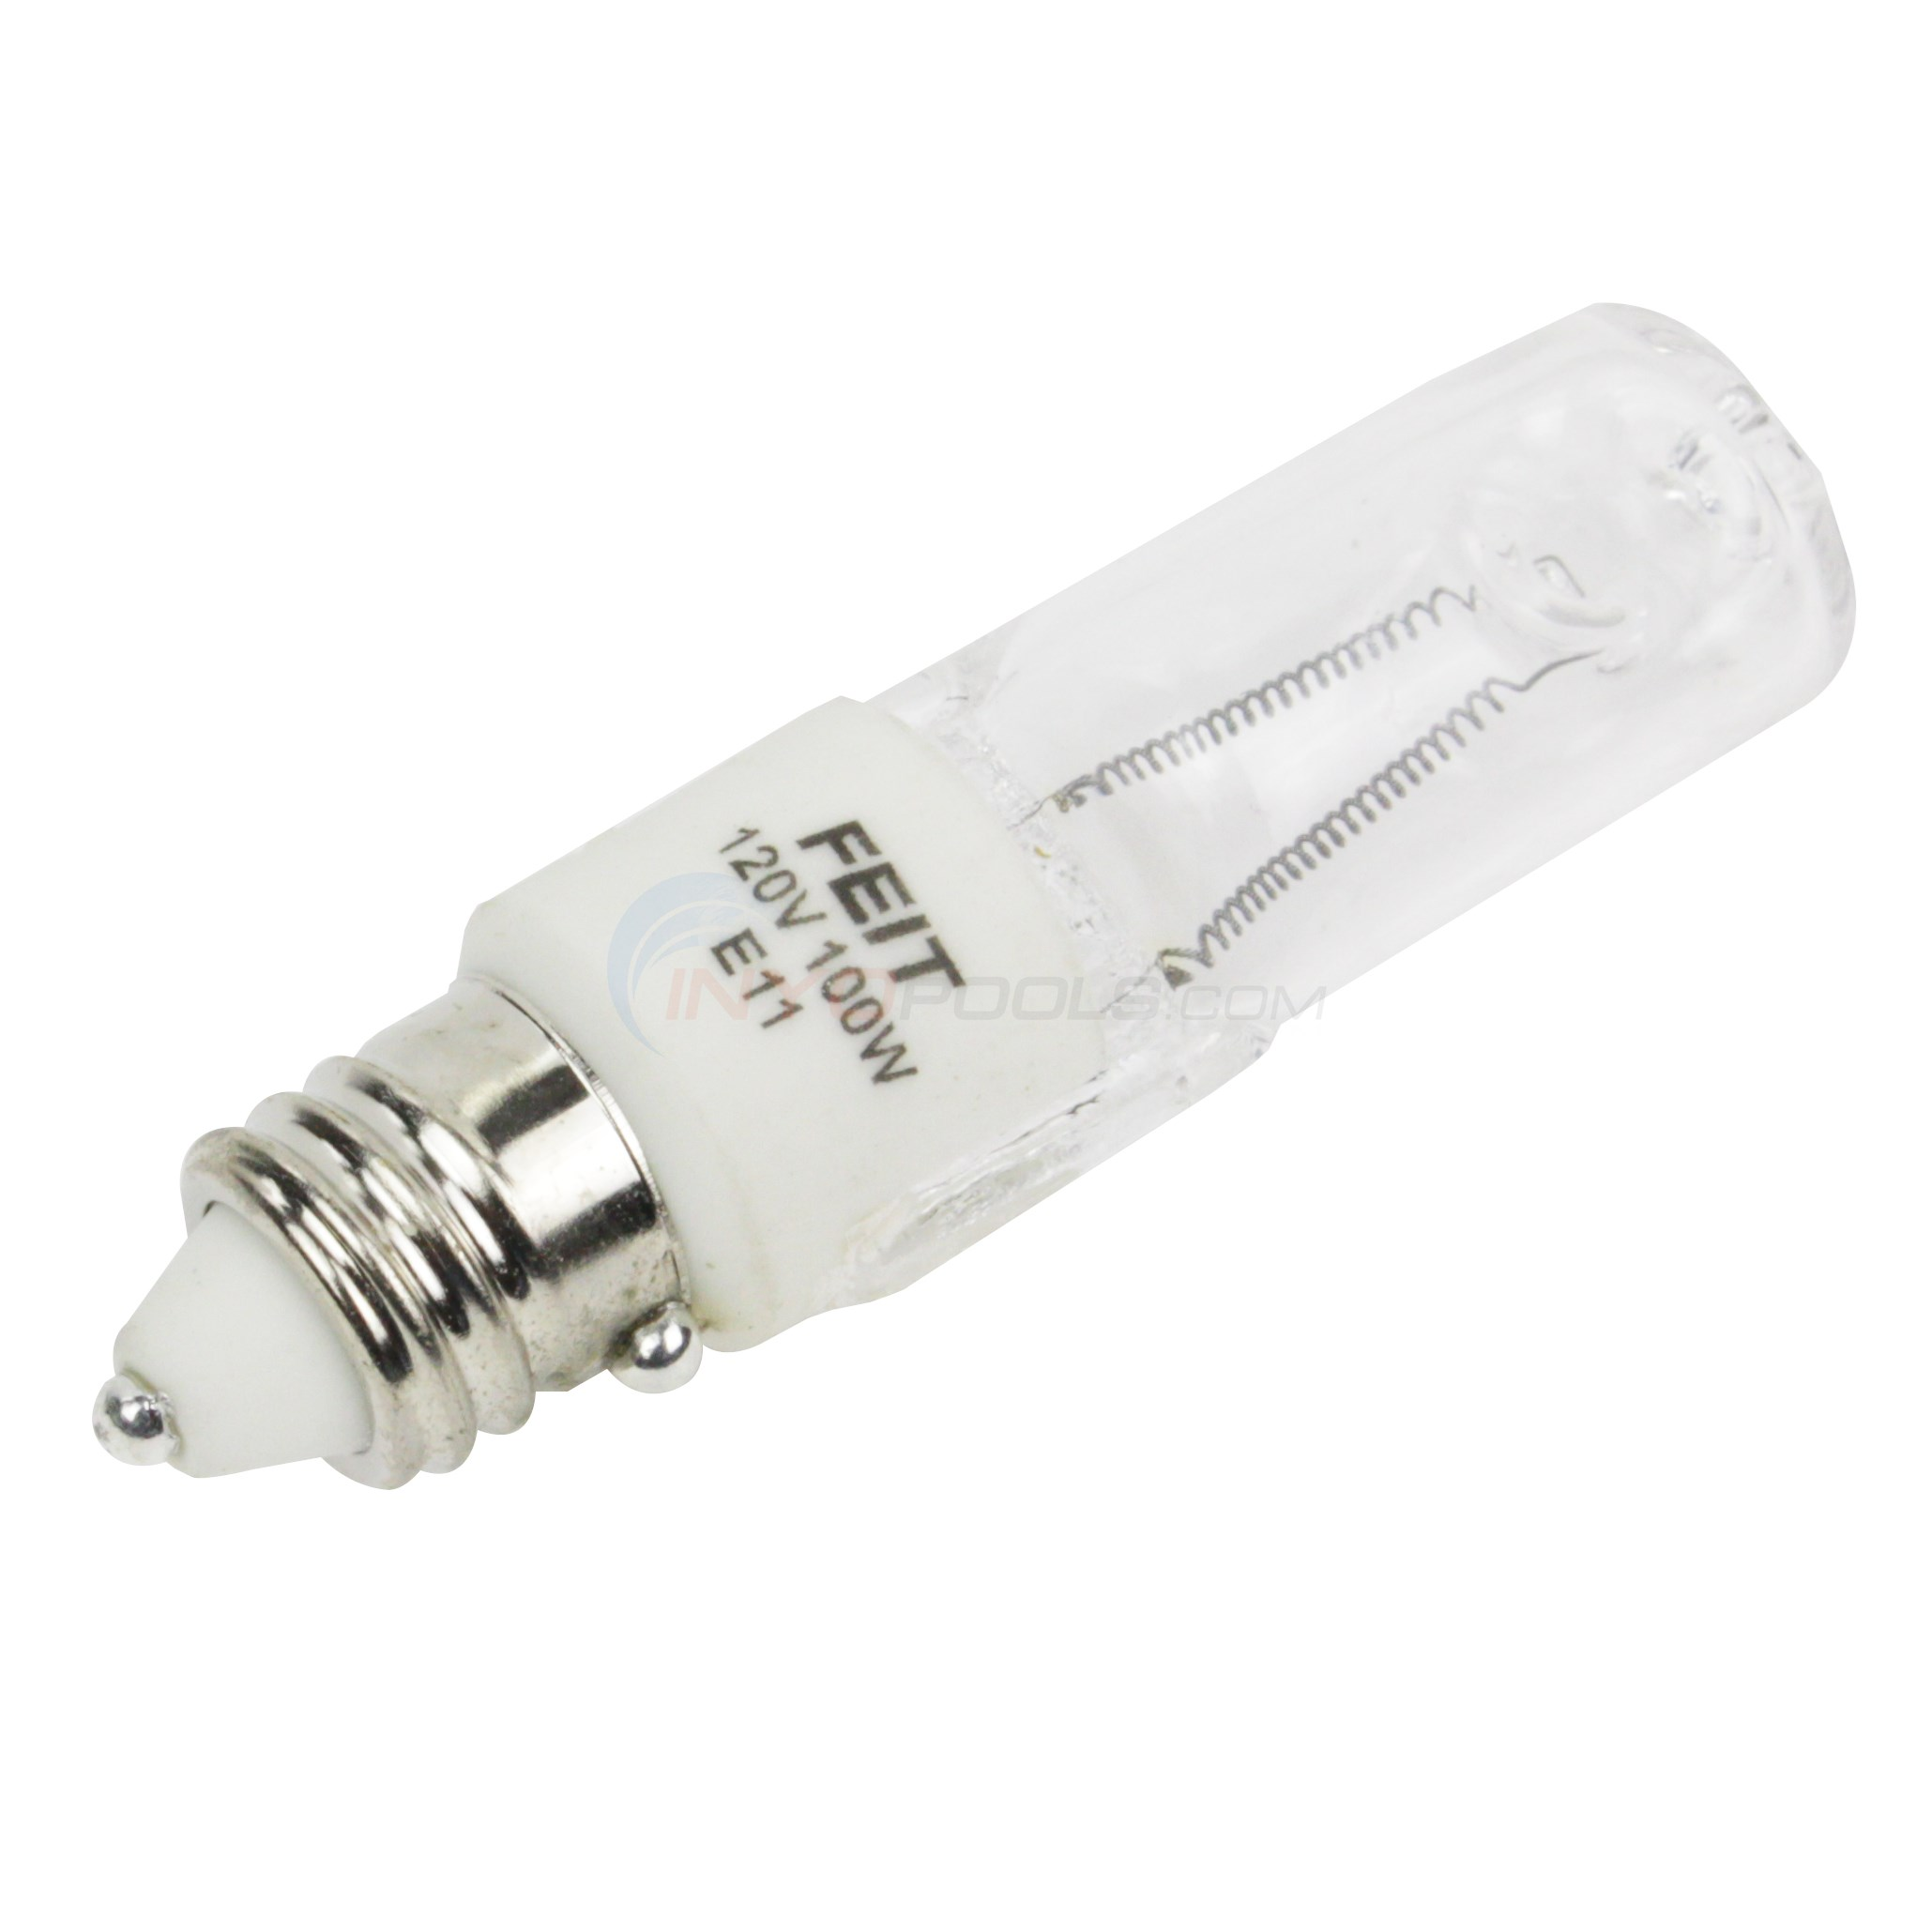 BULB, QUARTZ 120V 100W-SCREWIN MINI-CAN